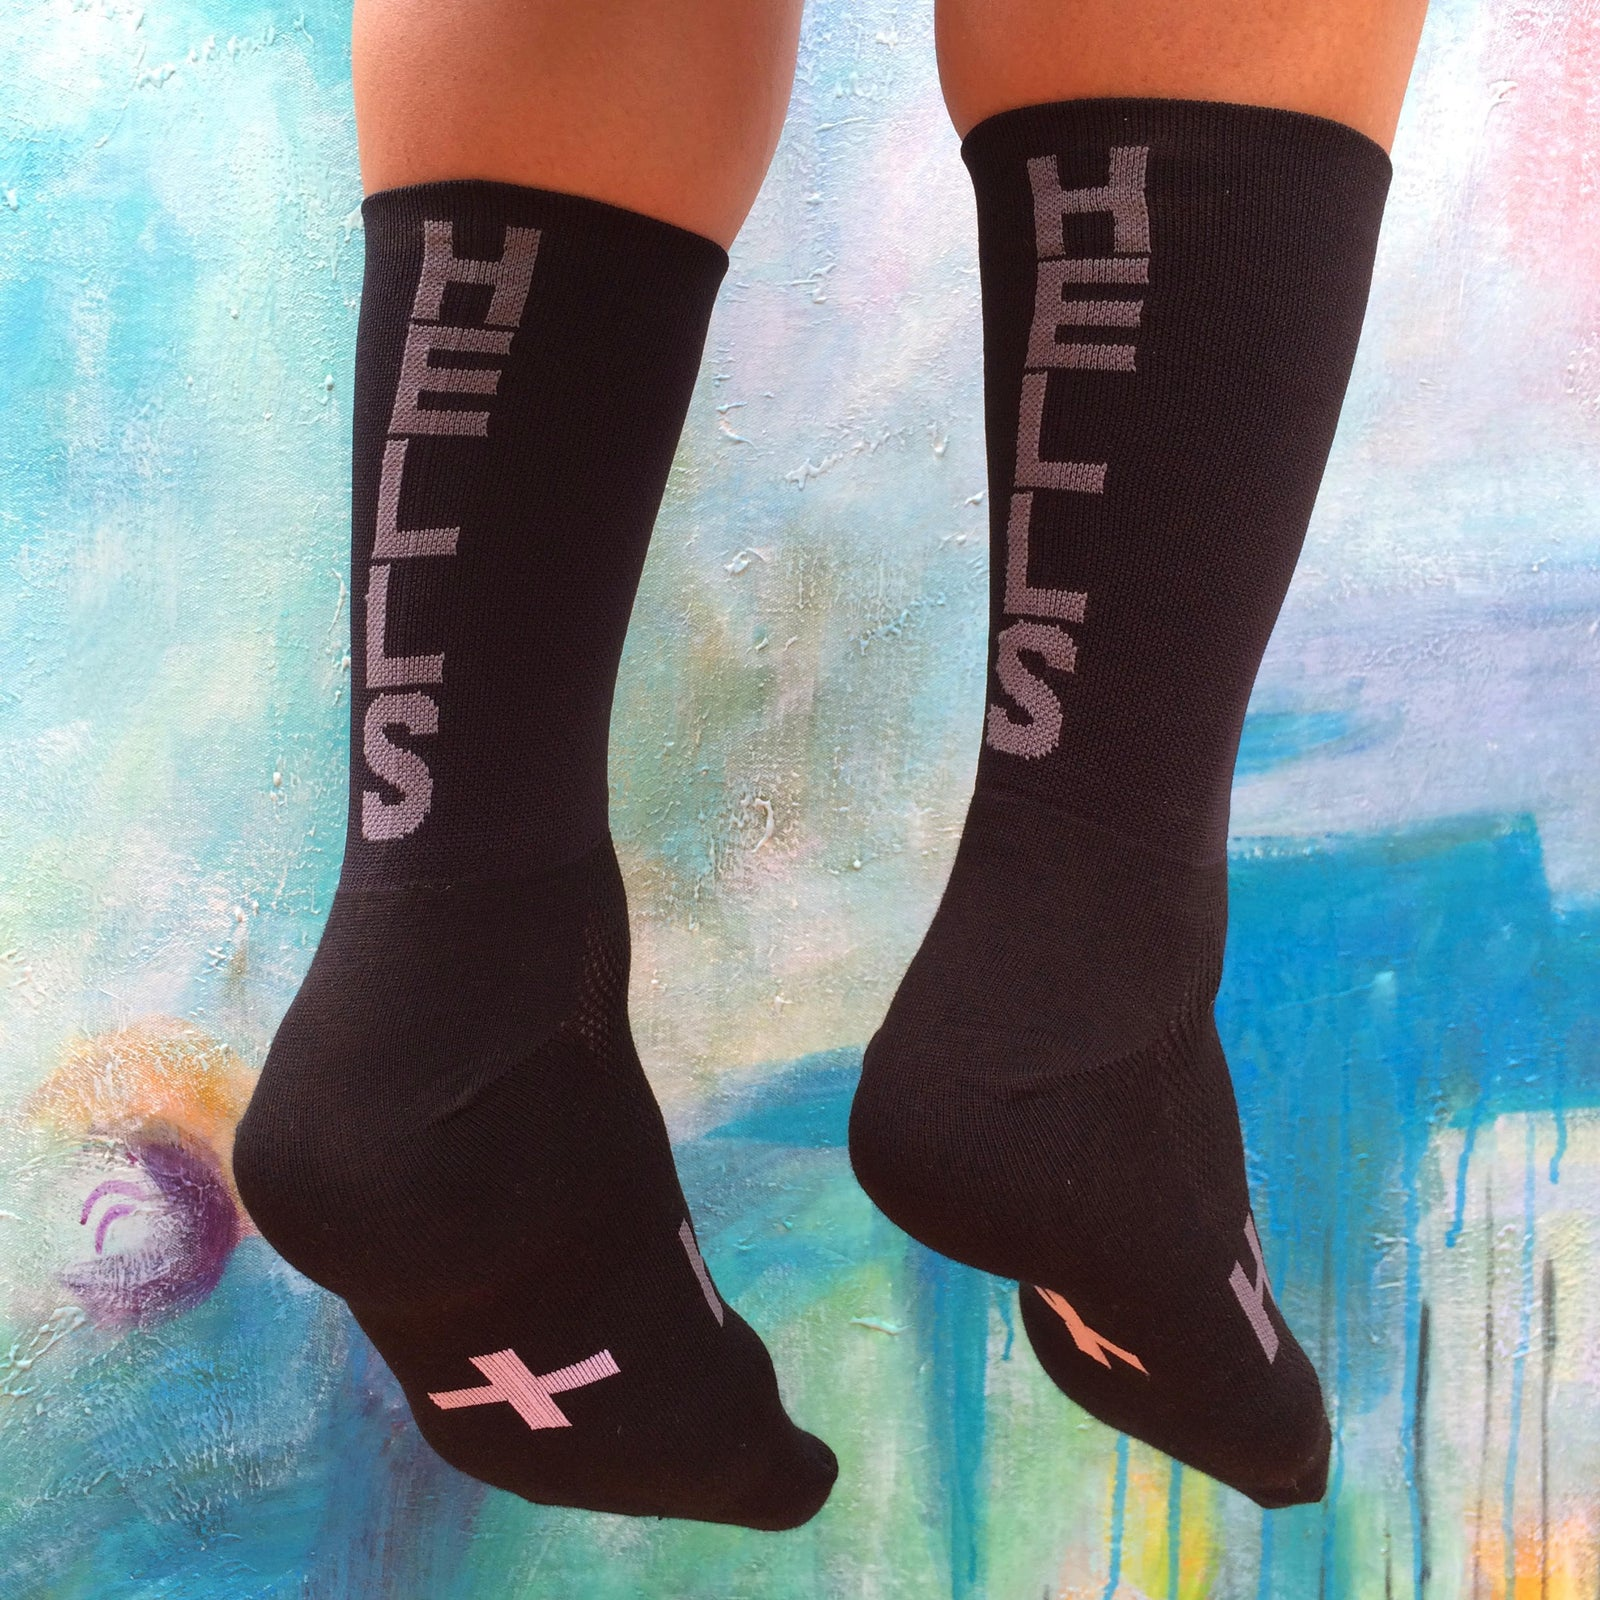 HELLS 500 TEAM SOCKS